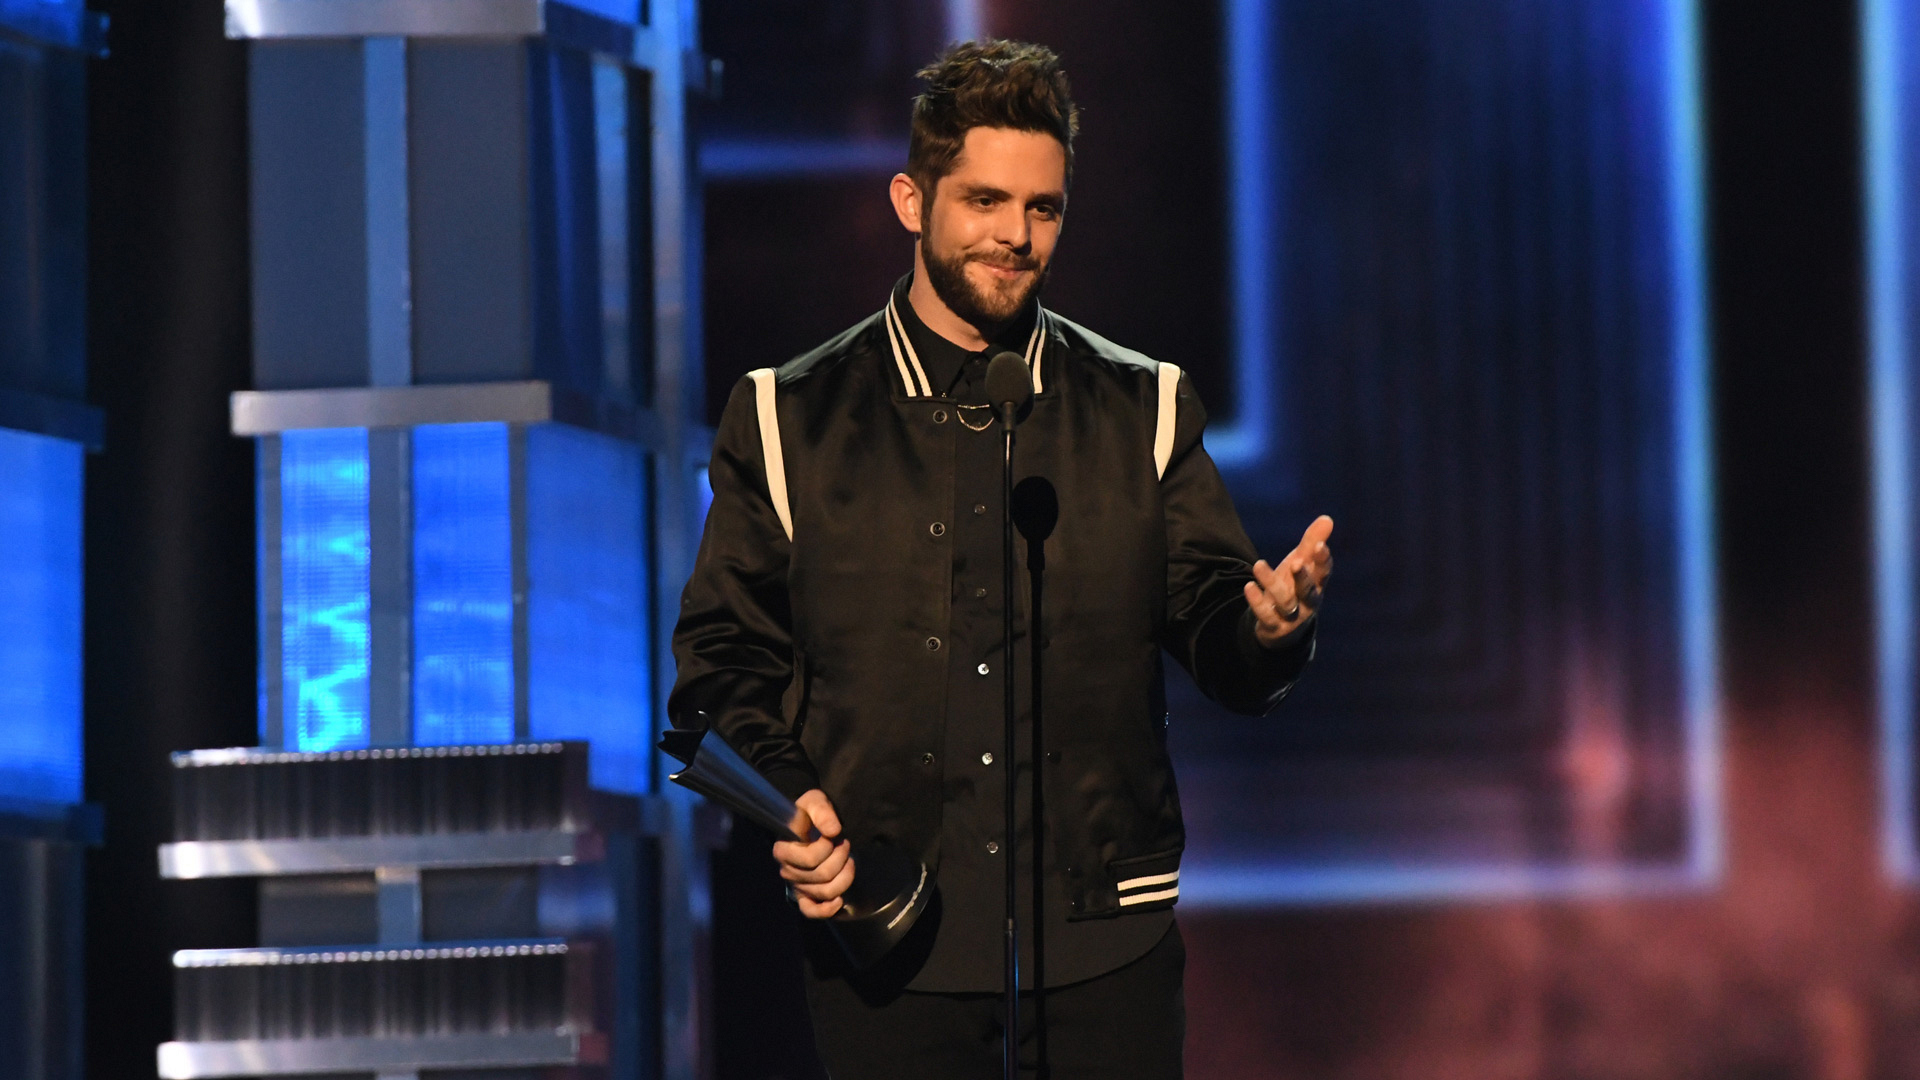 Thomas Rhett wins Male Vocalist Of The Year at the 52nd ACM Awards